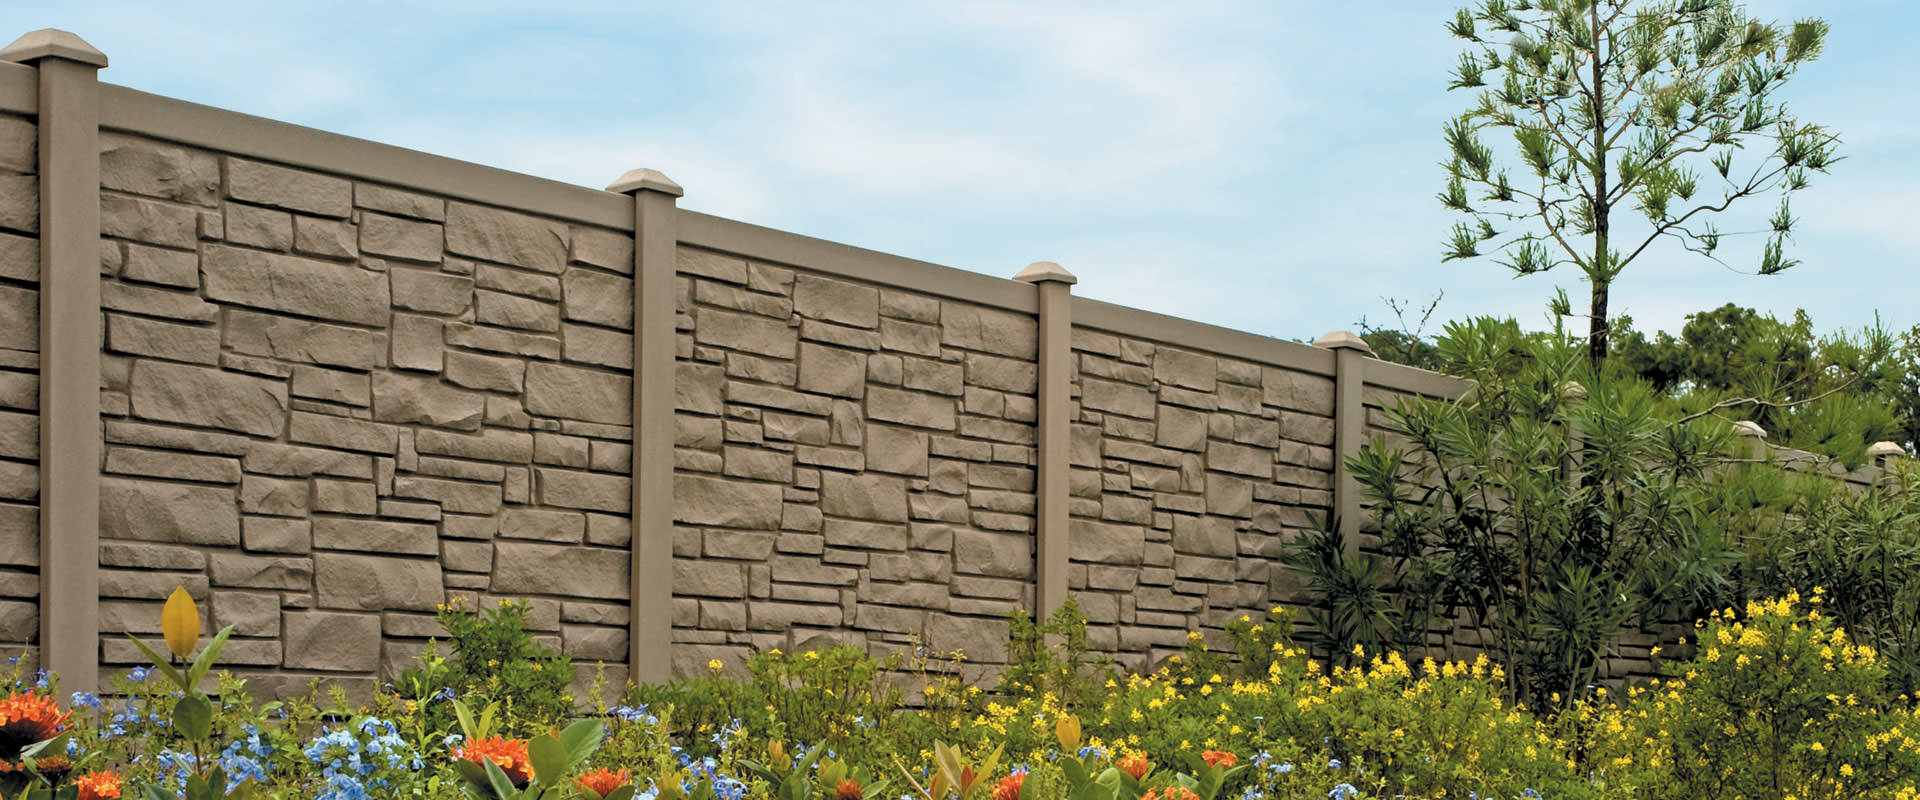 Vinyl Privacy Fences in Oklahoma